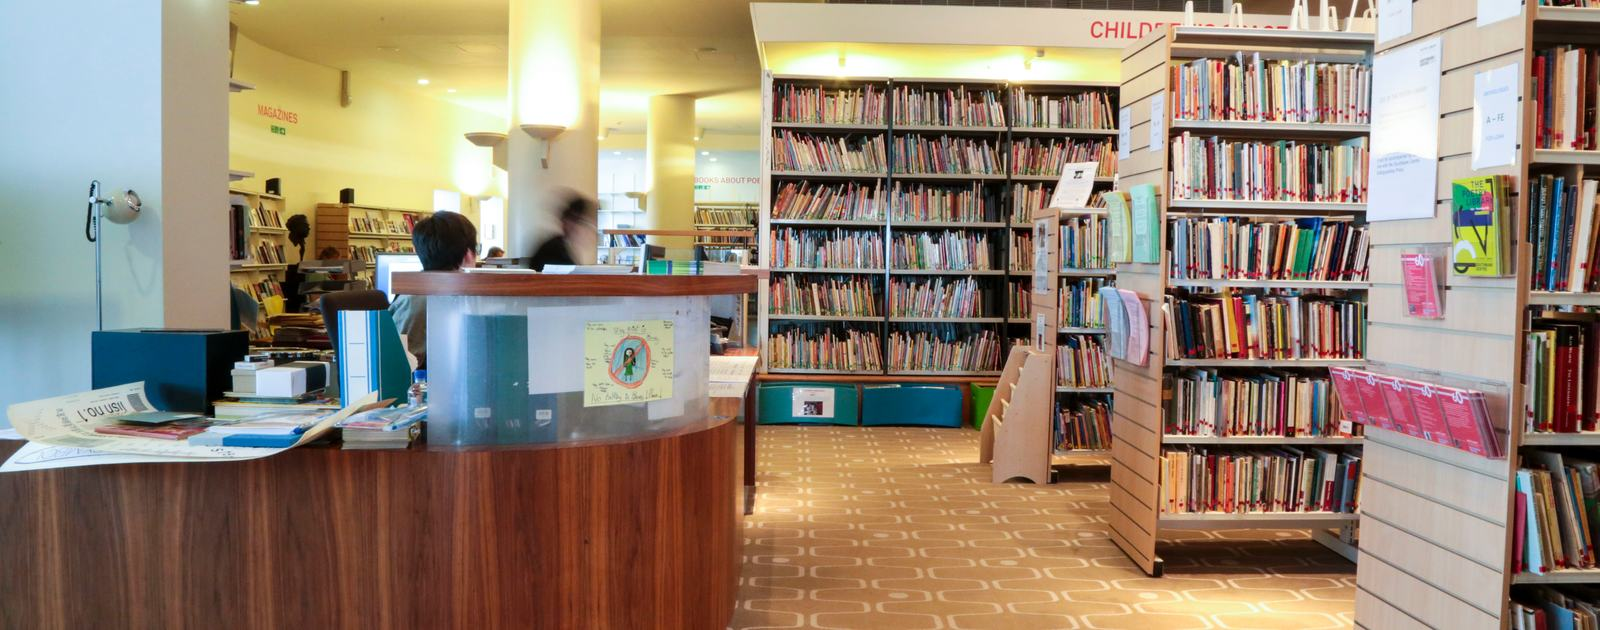 Southbank Centre Poetry Library.Royal Festival Hall.Library, rare books, visitors